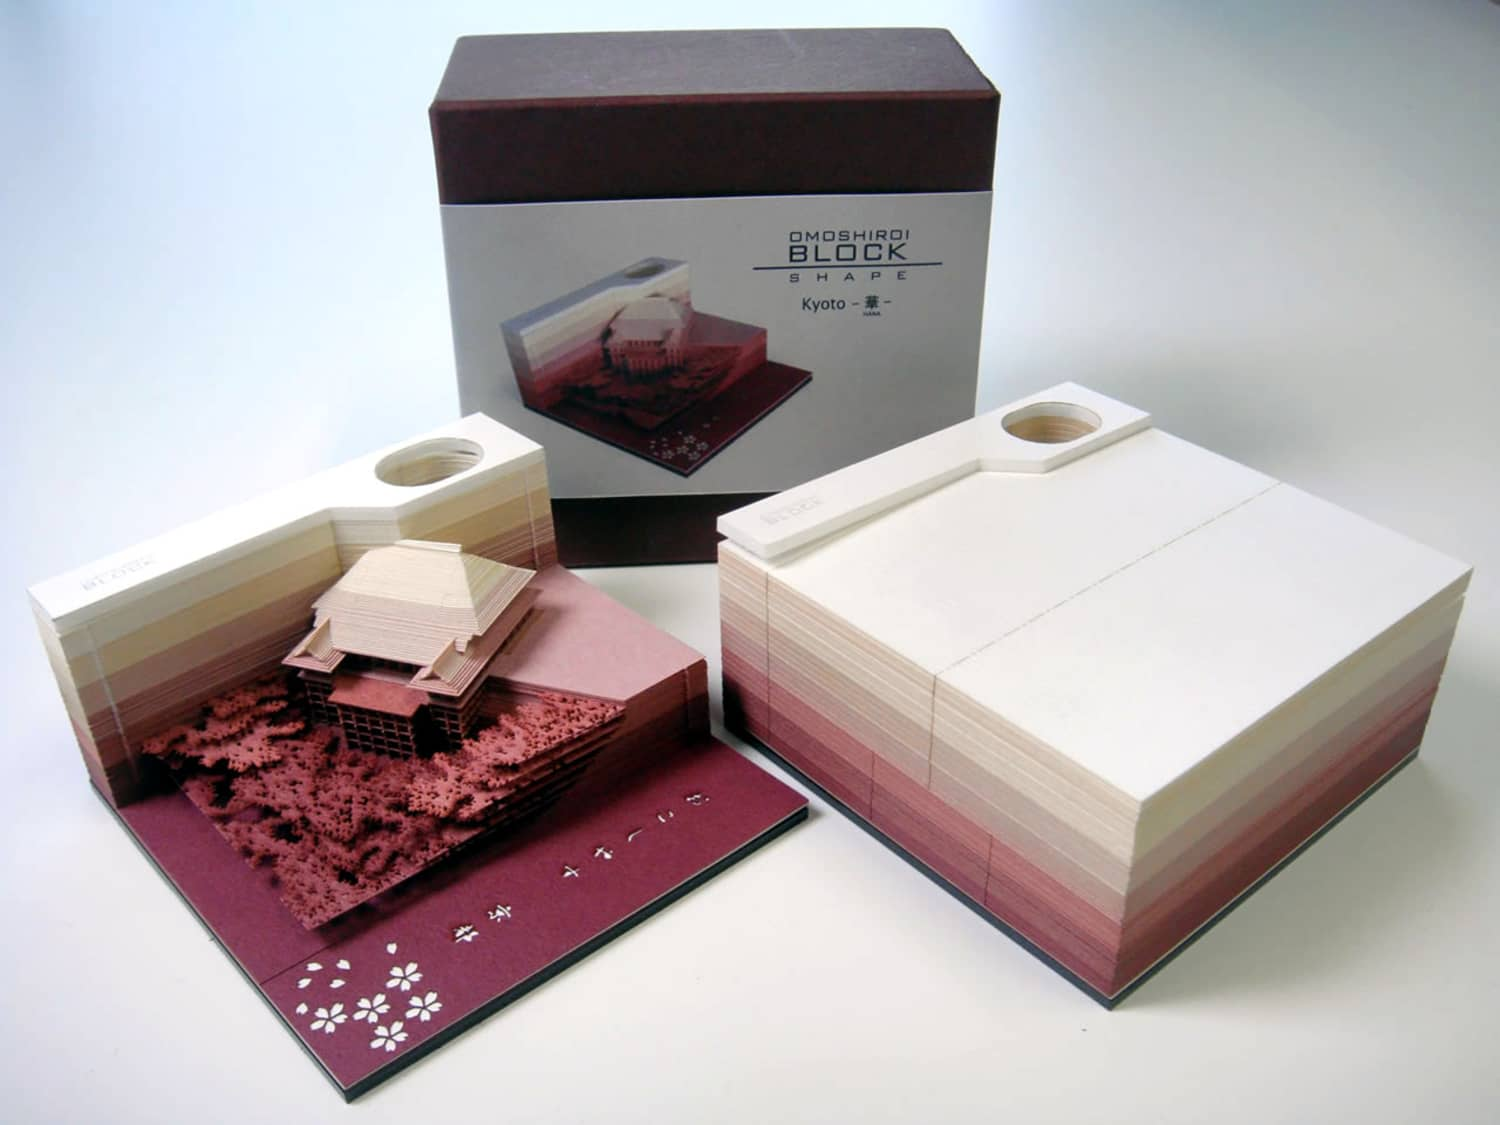 This Memo Pad Reveals Architectural Sculptures As You Use It